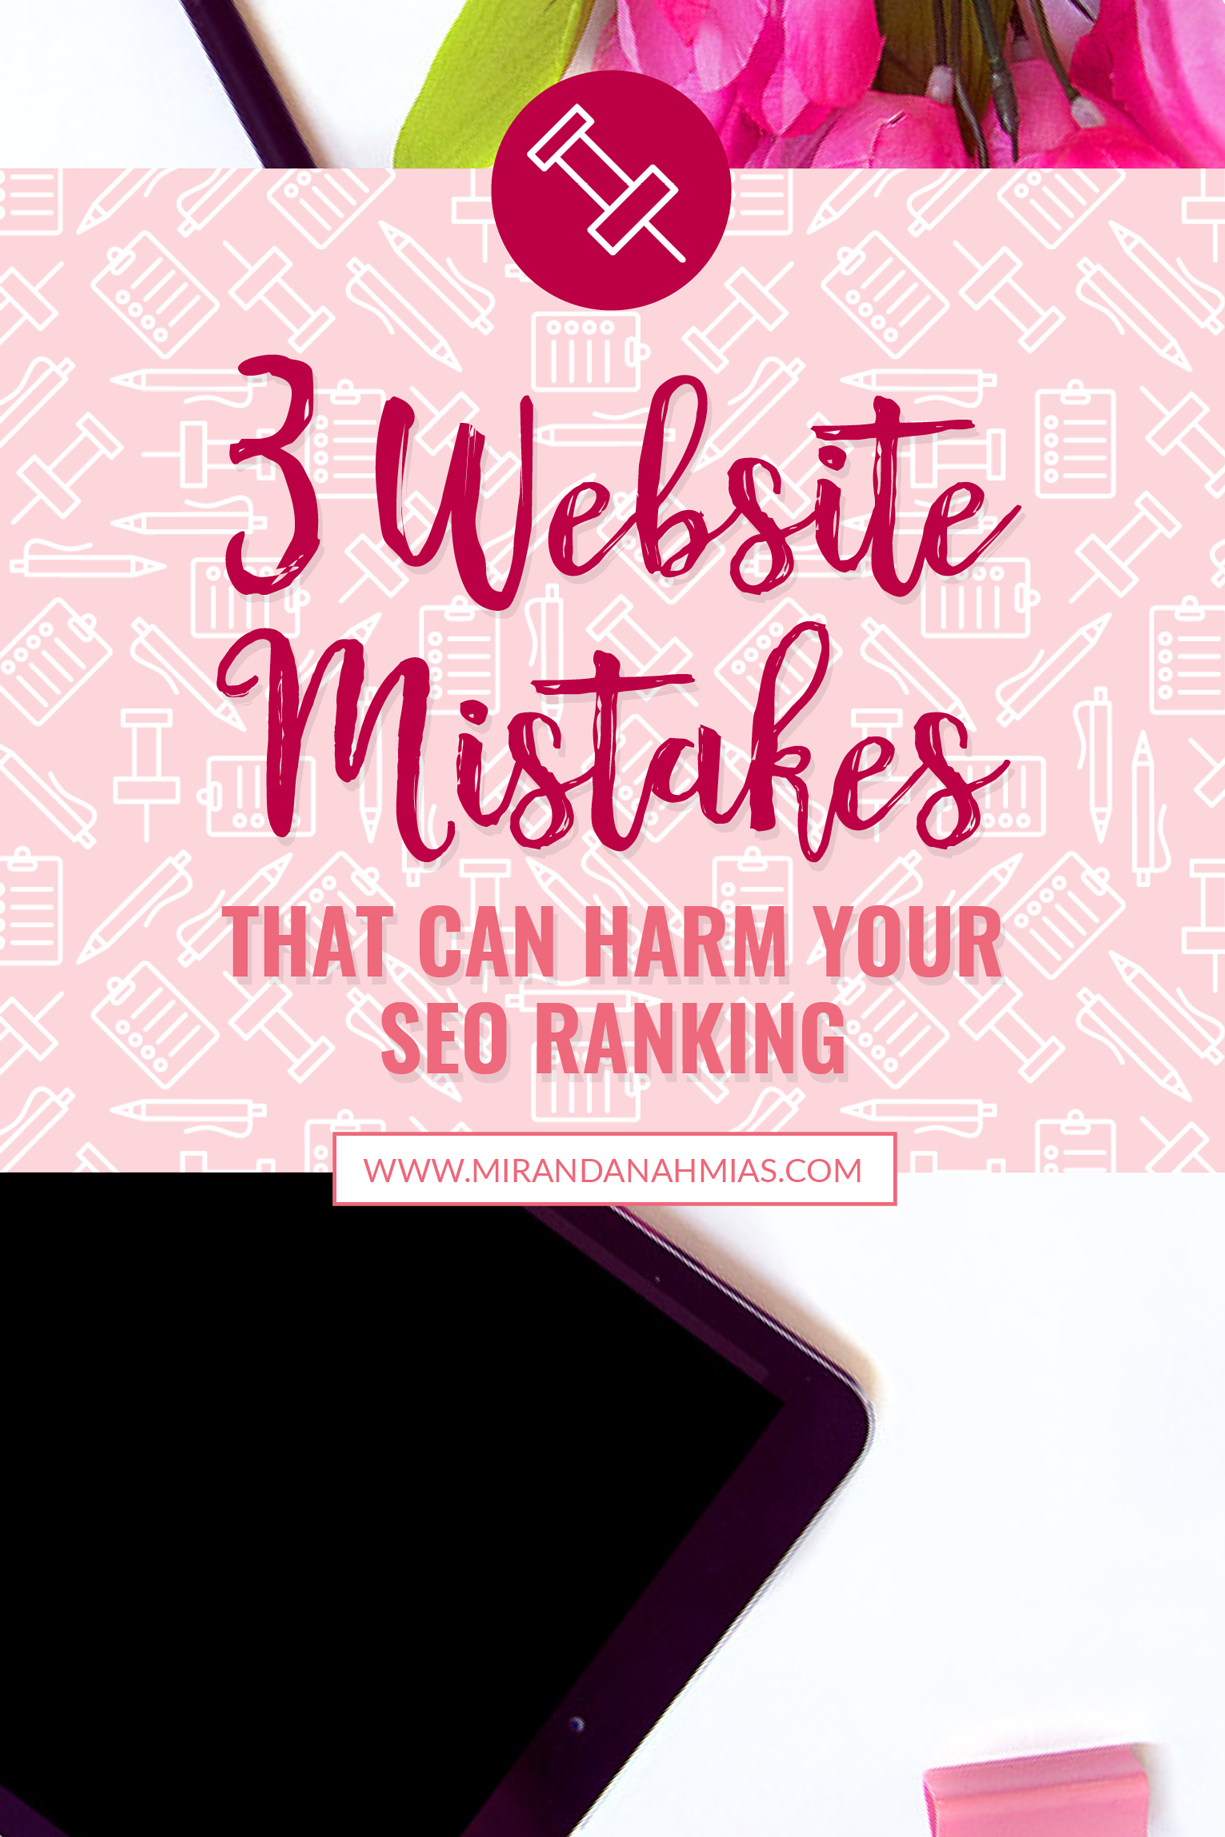 Your-SEO-Ranking-Pinterest-3